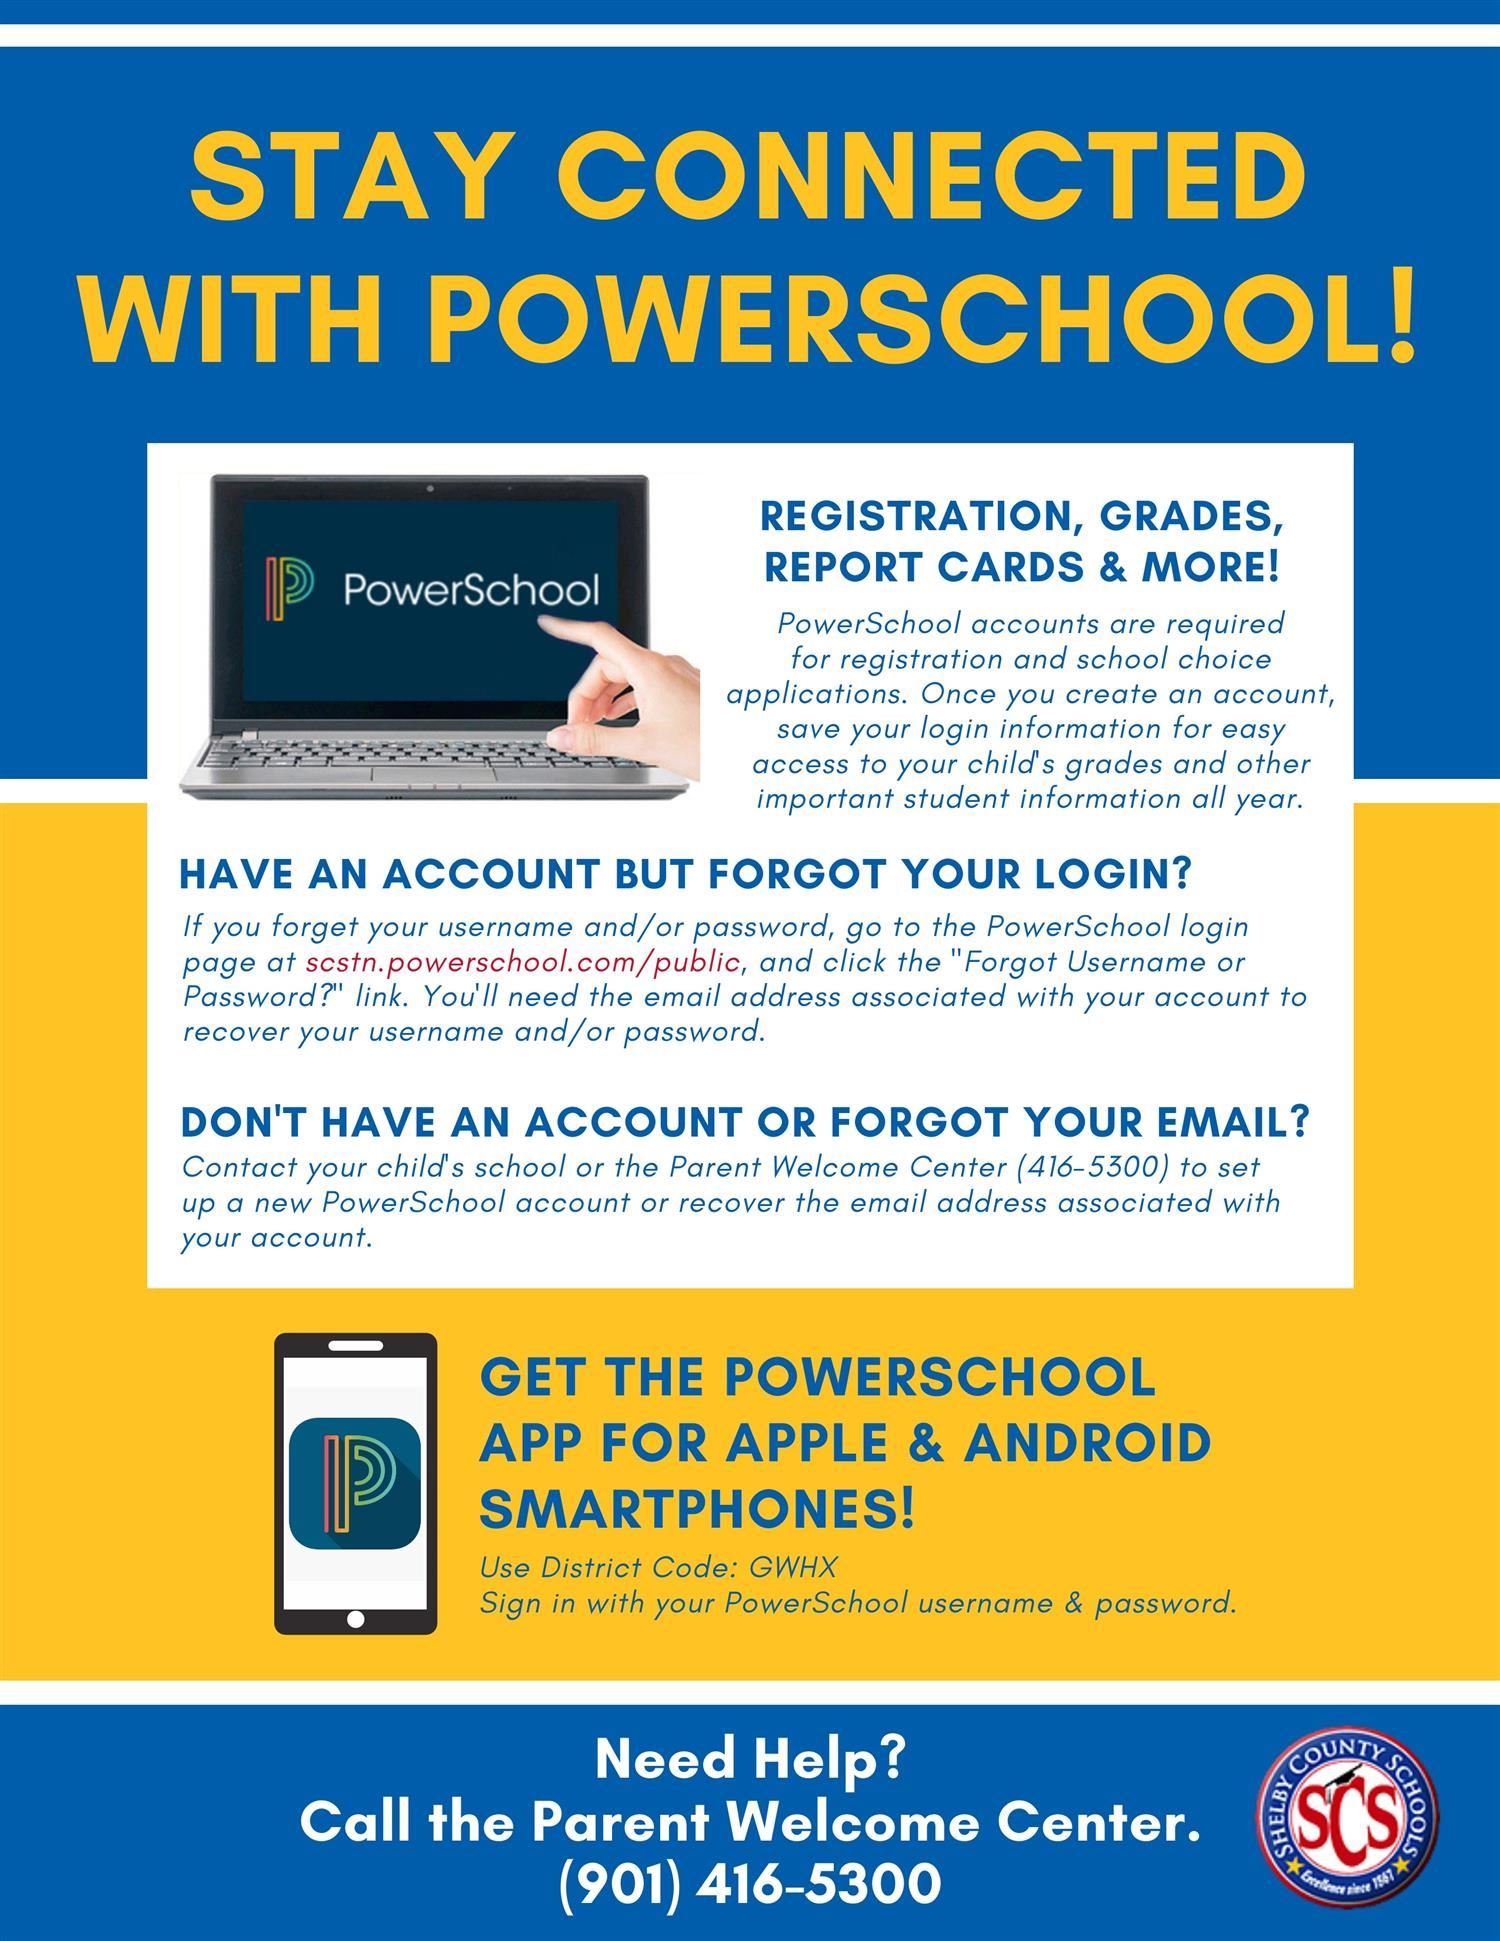 How to access powerschool